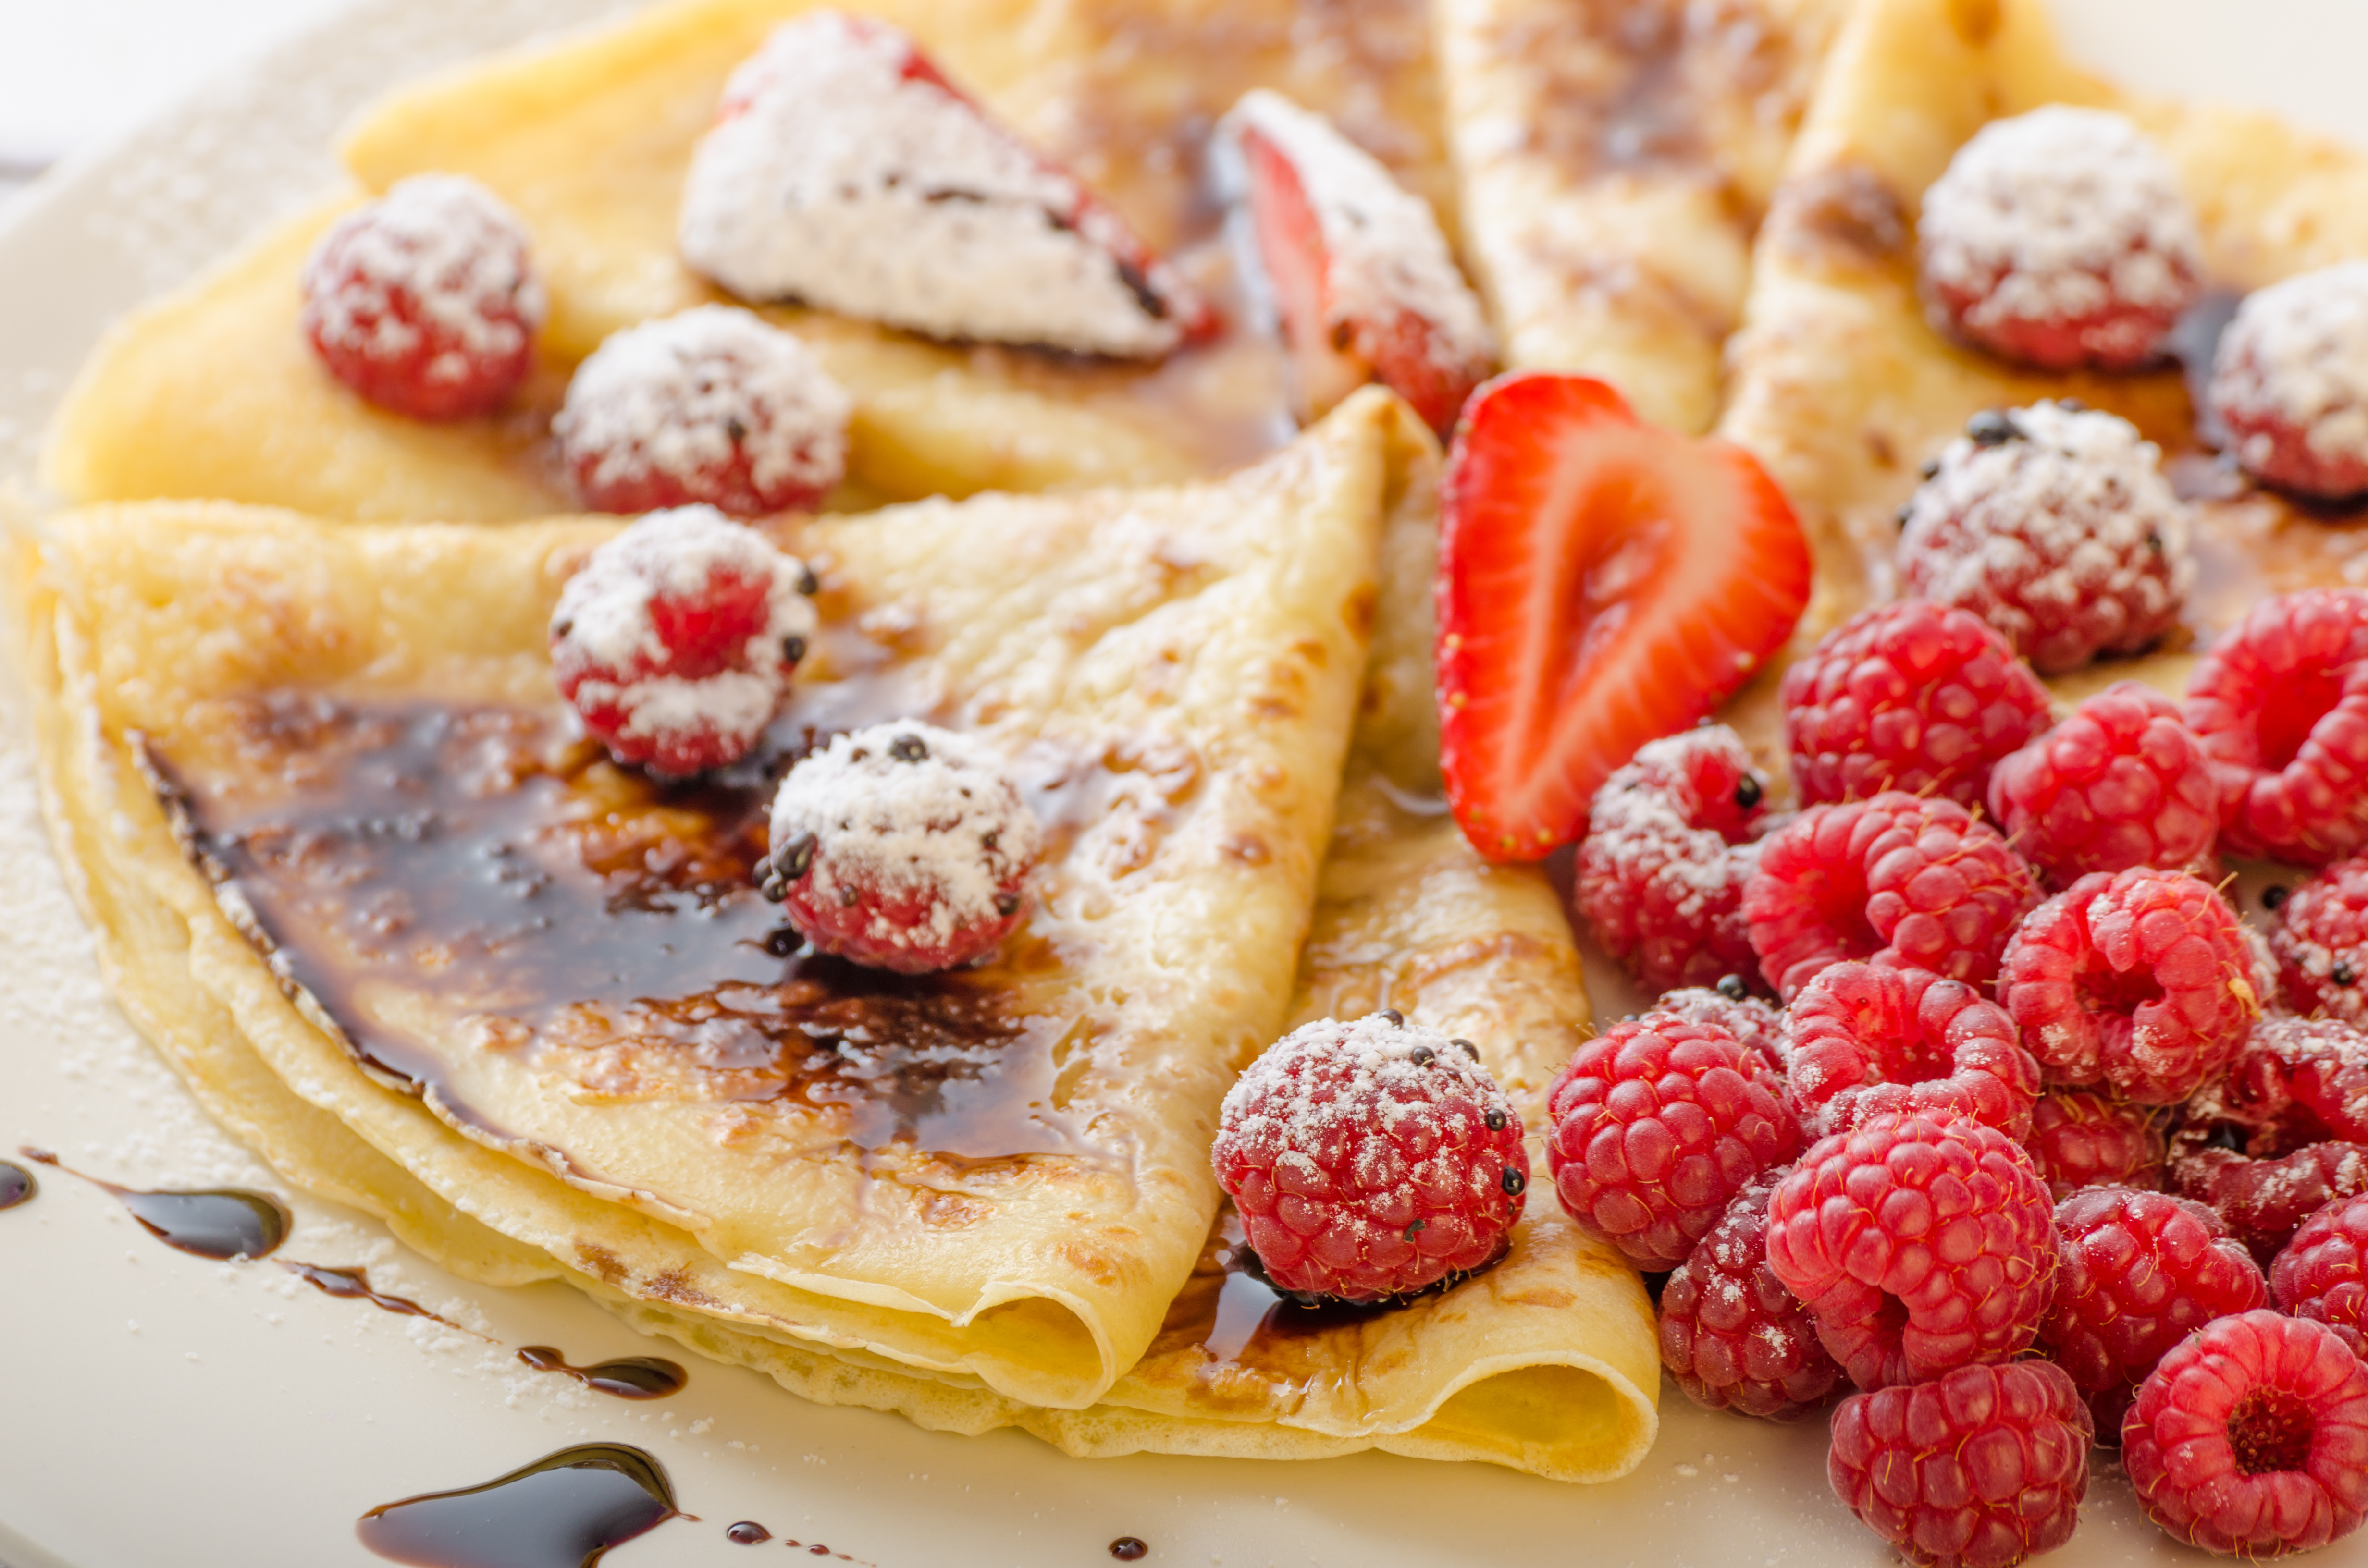 Crepes with Strawberries, Raspberries and Sticky Balsamic